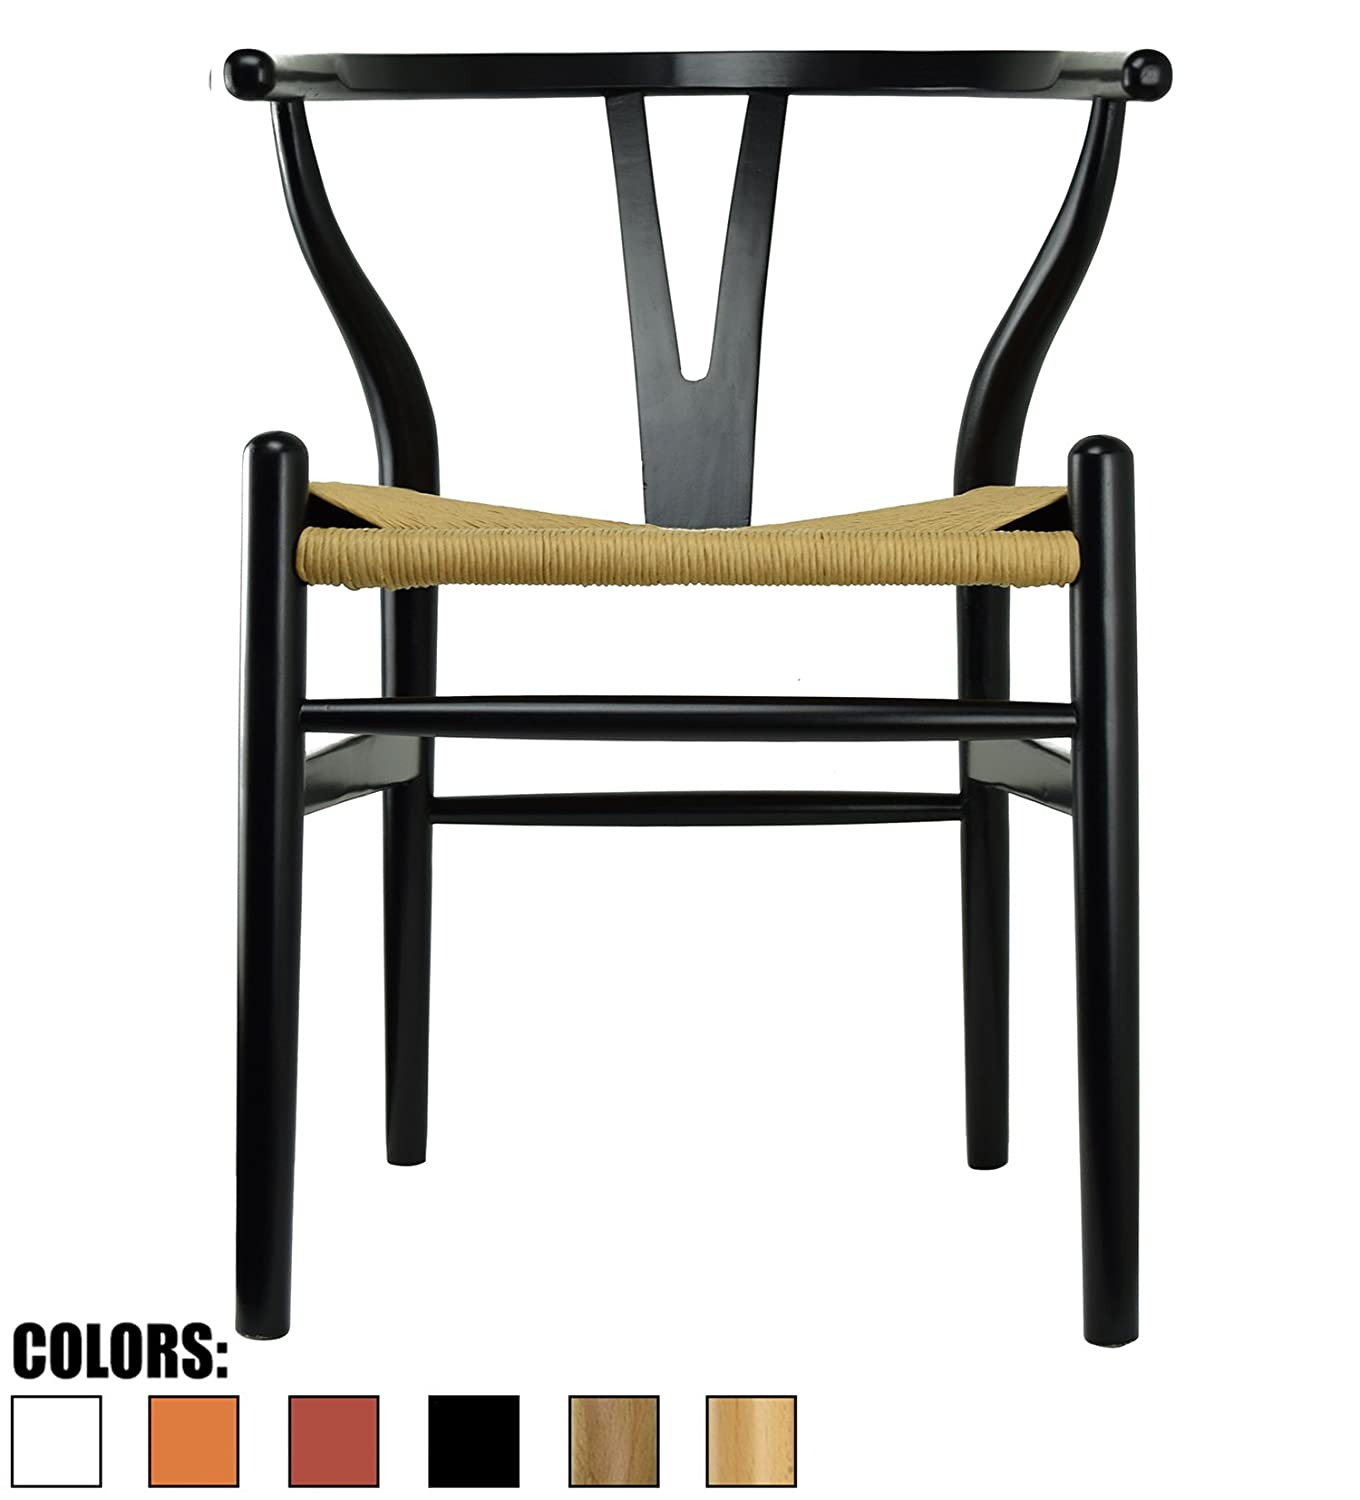 2xhome Black – Wishbone Wood Arm Chair Armchair Modern Black with Natural Woven Seat Dining Room Chair, 1 piece